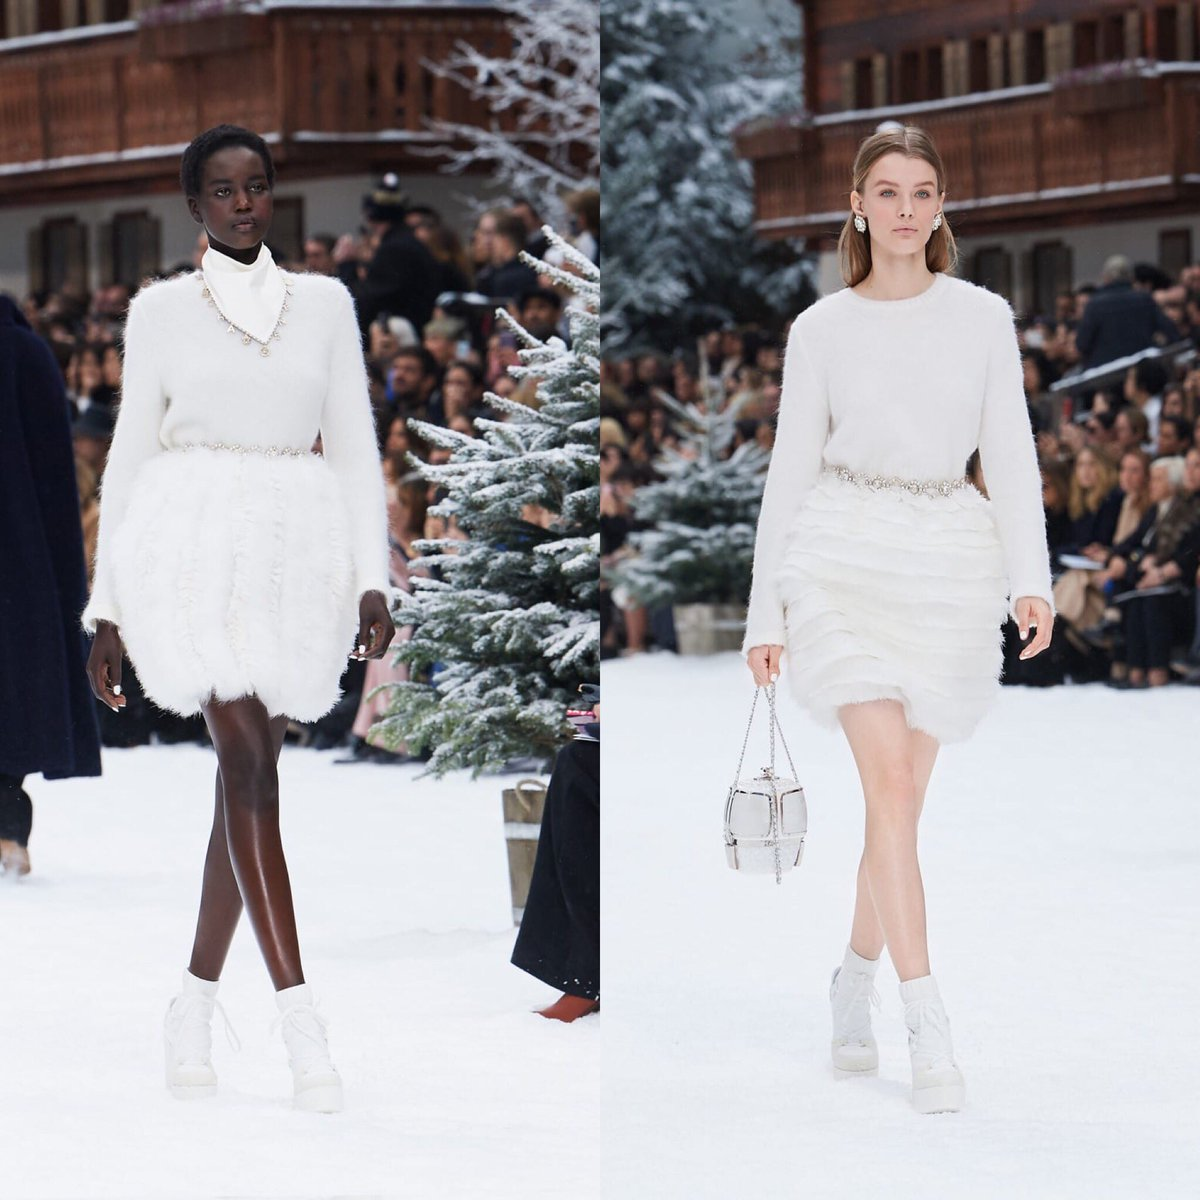 Looks of the #CHANELFallWinter 2019-20 collection, designed by #KarlLagerfeld & #VirginieViard #CHANELintheSnow | Visit http://espritdegabrielle.com  L'héritage de Coco Chanel #espritdegabrielle © #CHANEL